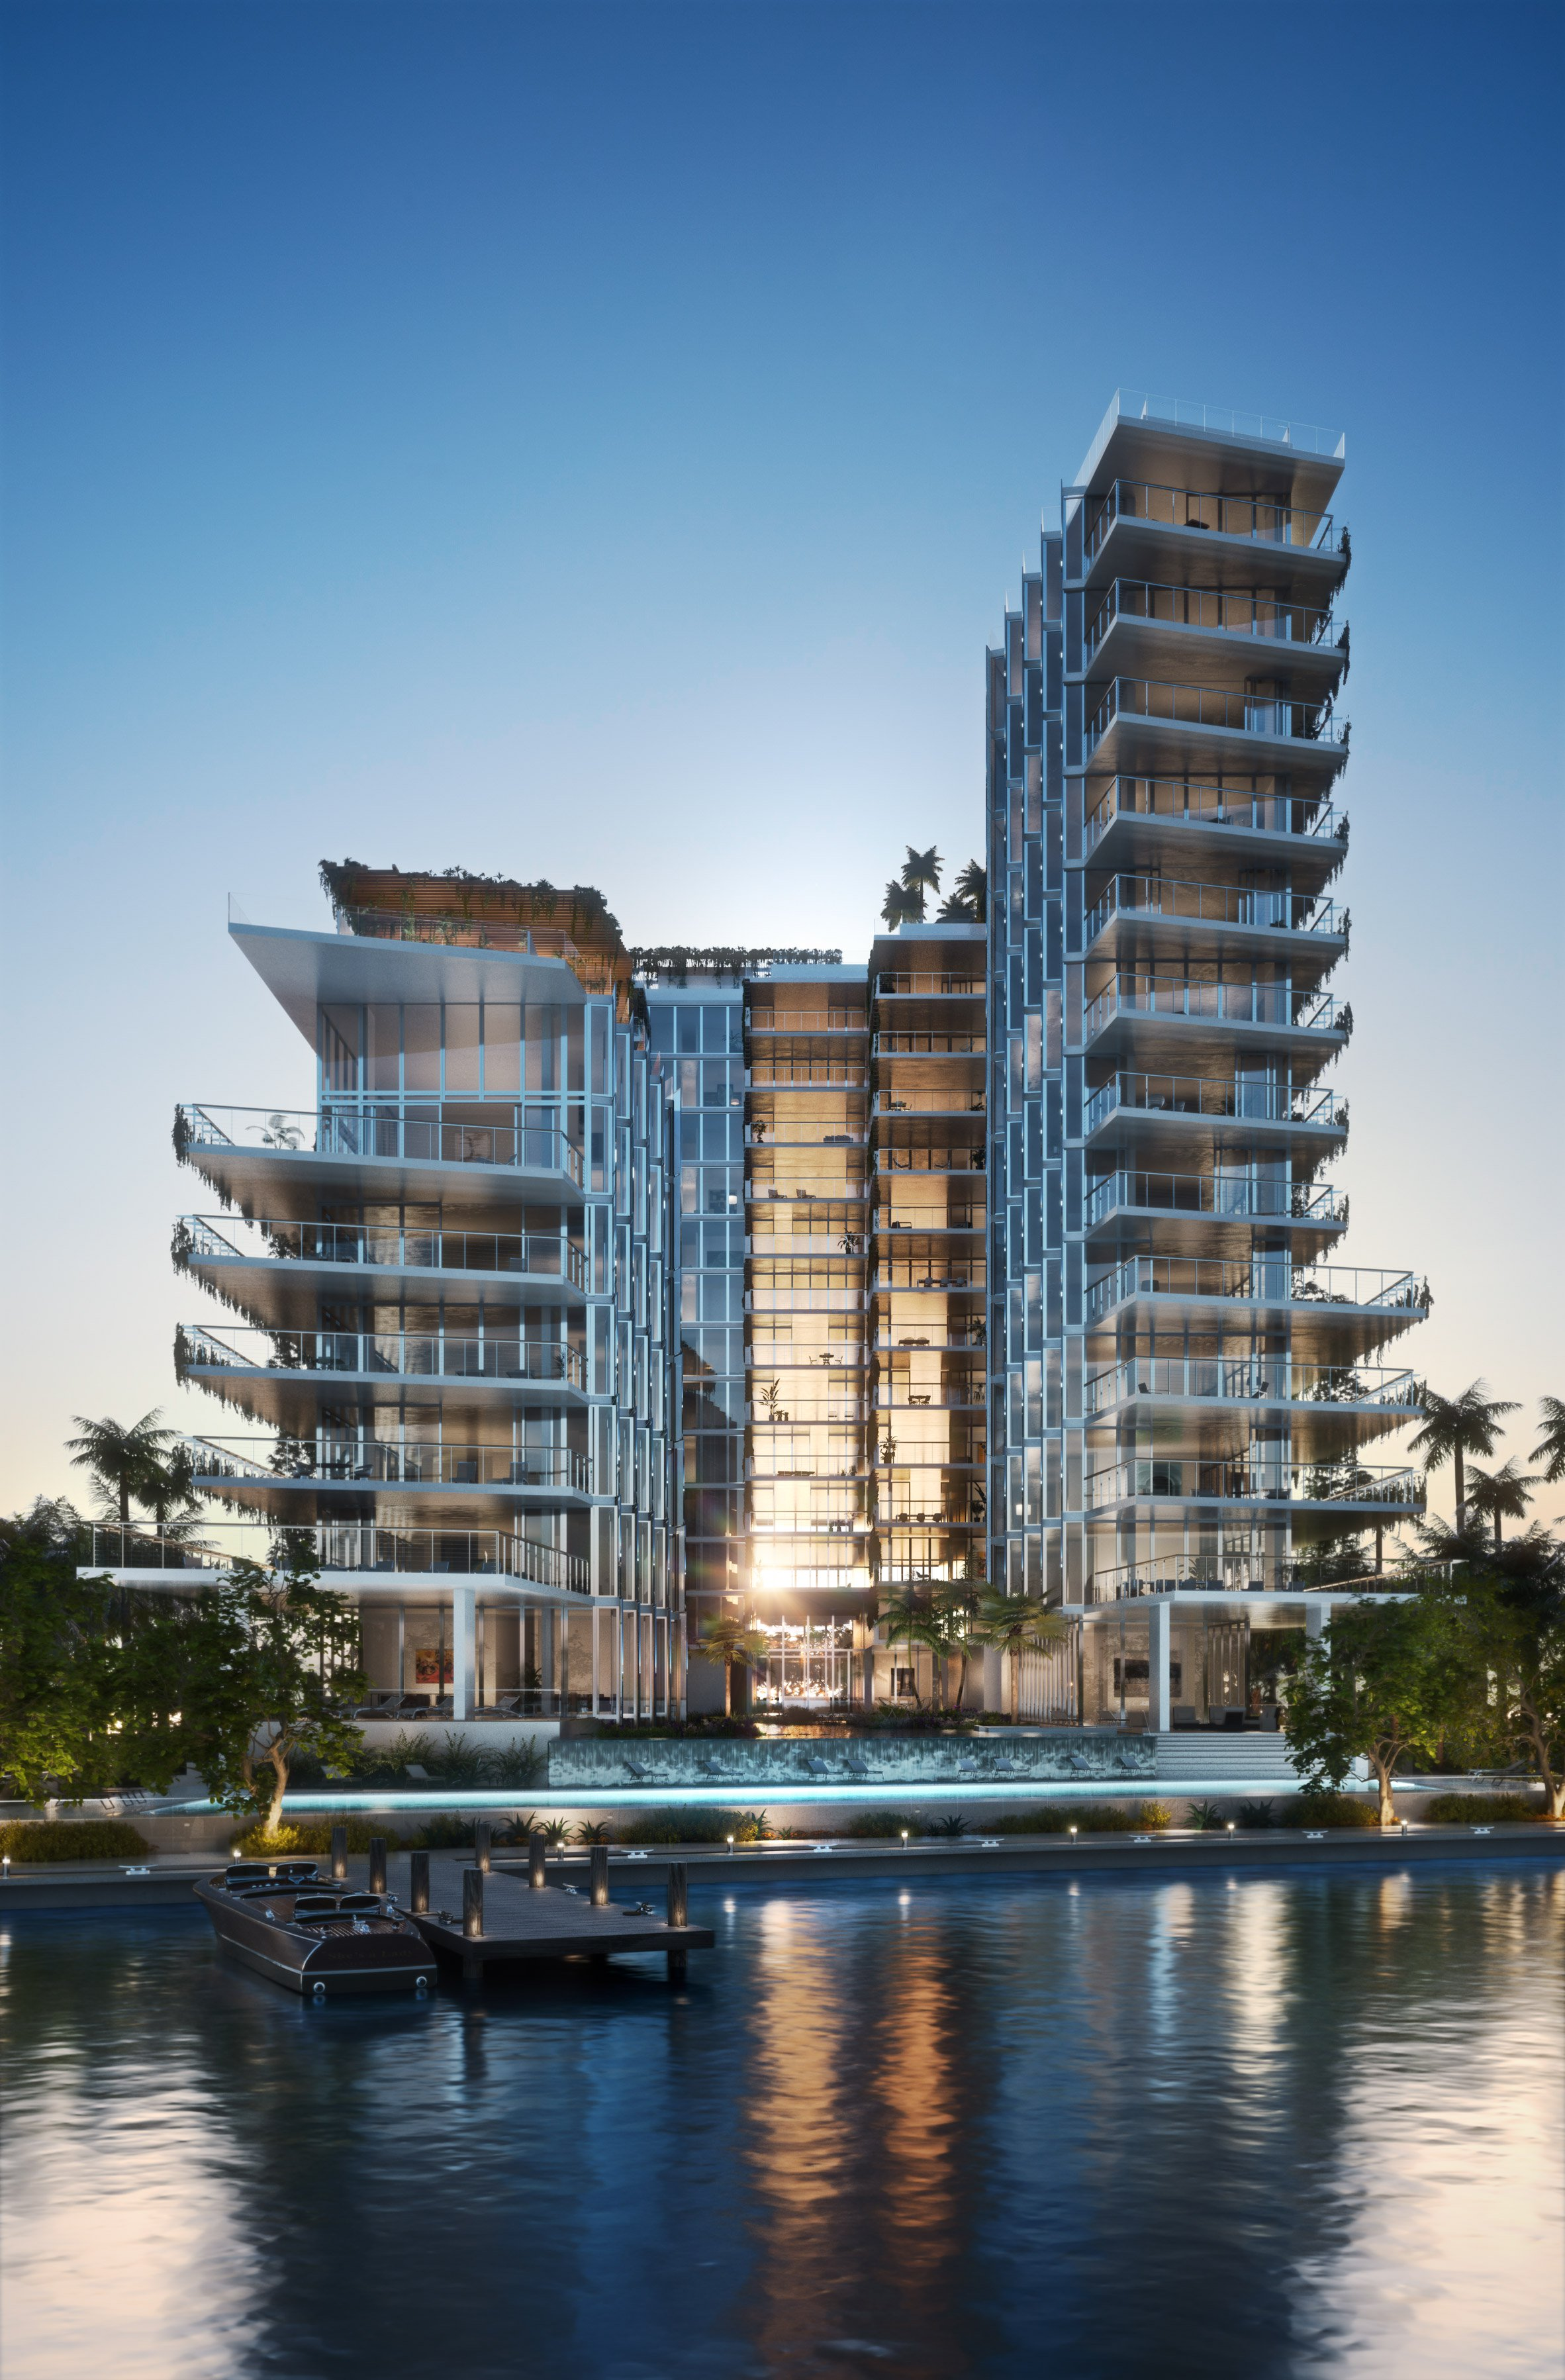 Jean Nouvel elevates Miami Beach residences to avoid rising sea levels